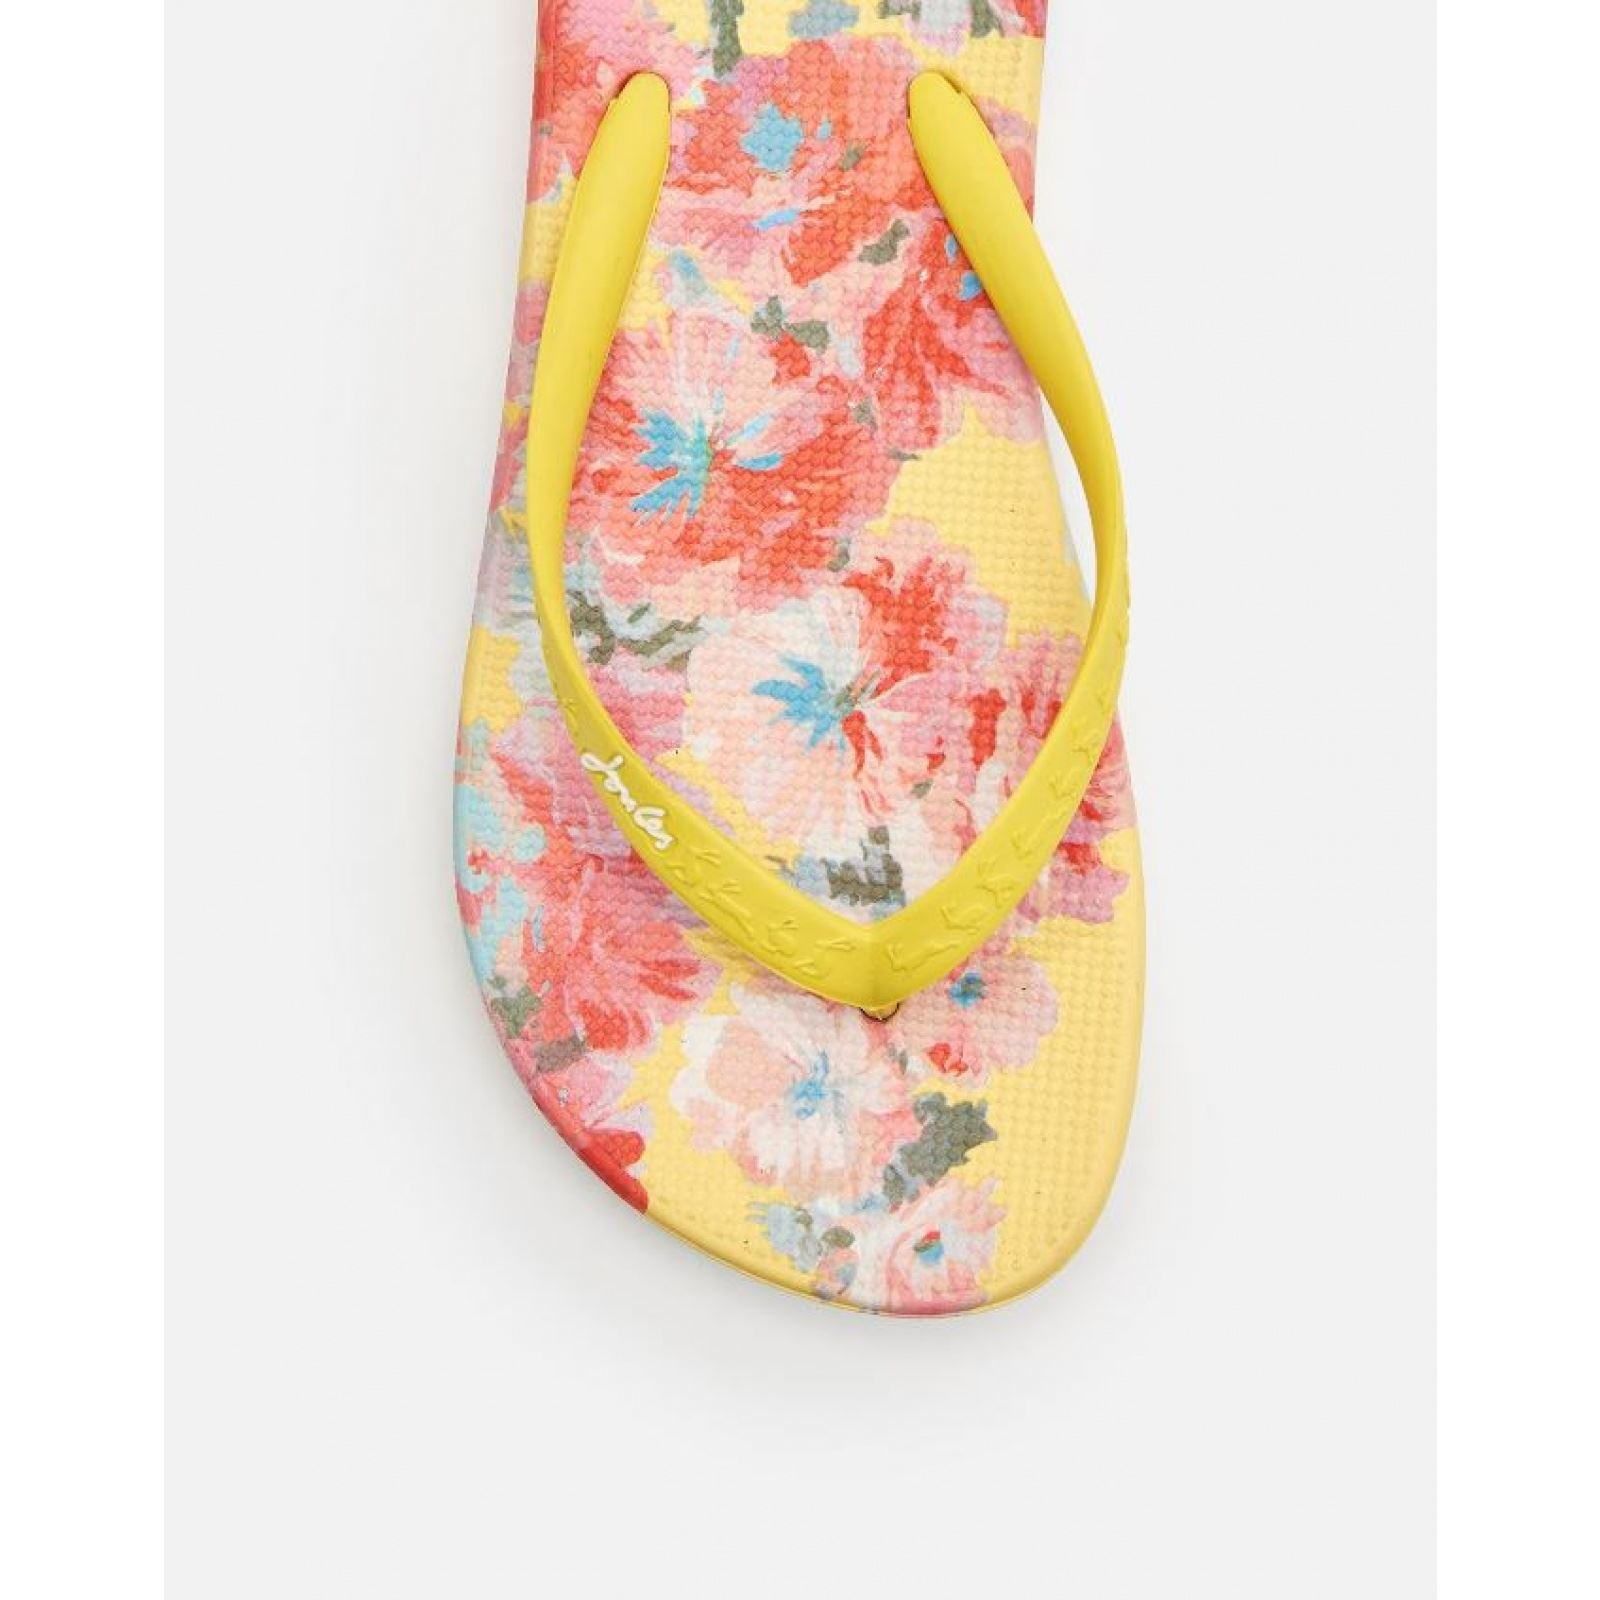 Joules-Flip-Flops-Sandals-Summer-Flip-Flop-NEW-2019-COLOURS thumbnail 15